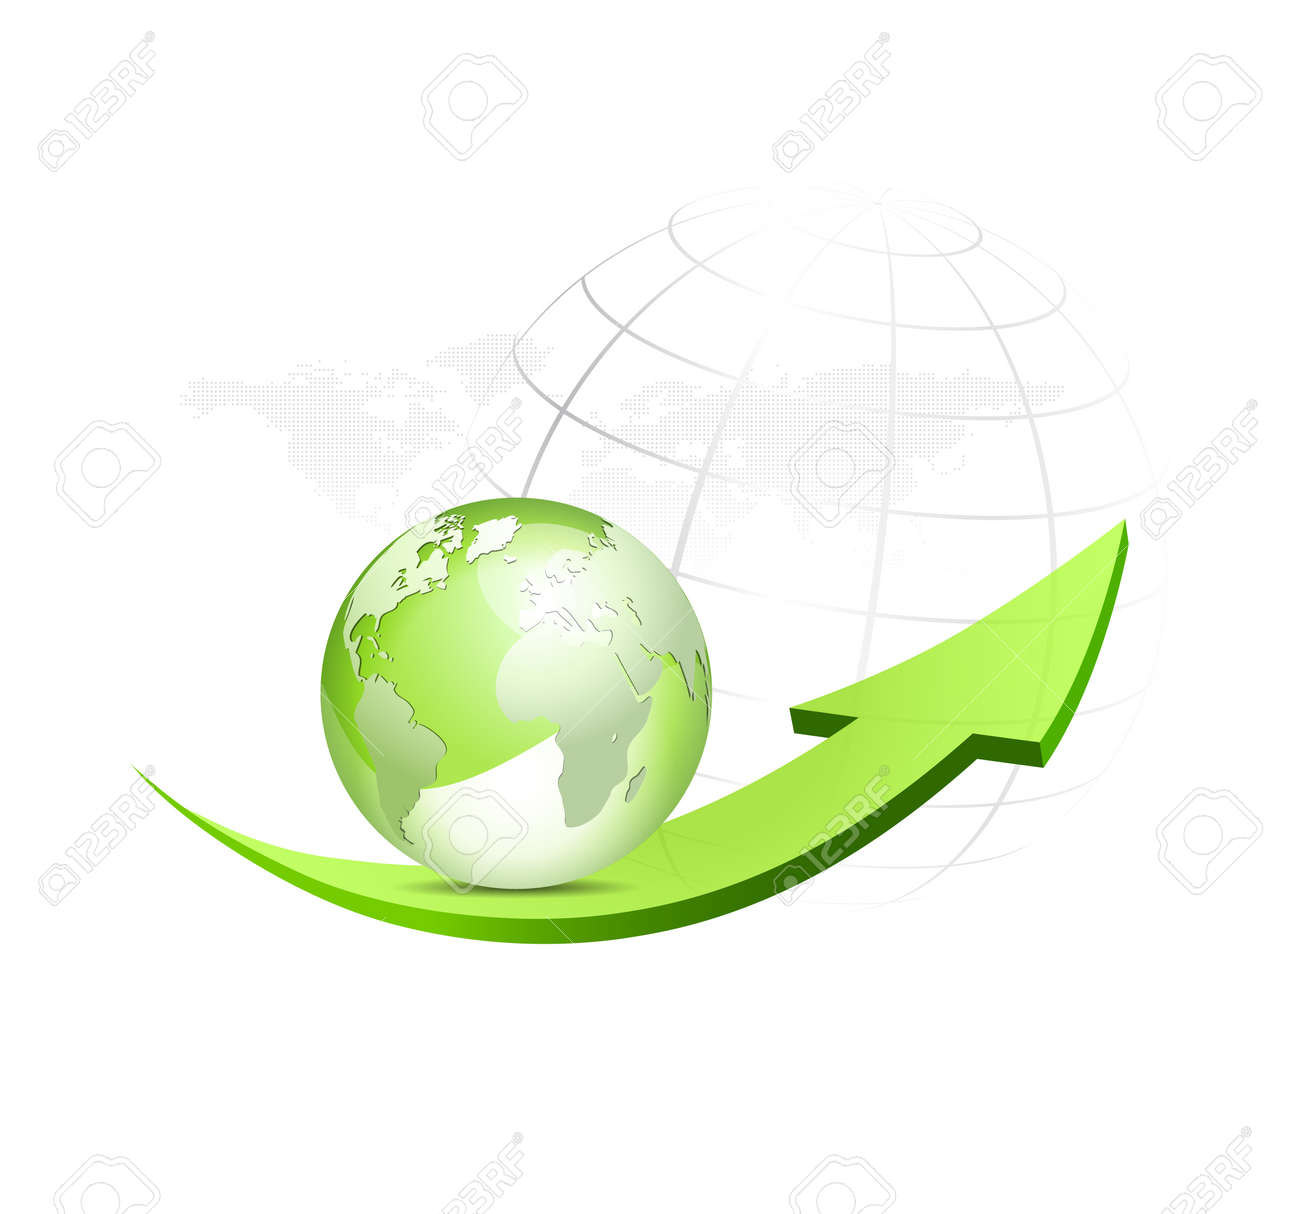 Green globe with arrow and dotted world map in the background green globe with arrow and dotted world map in the background glossy eco symbol gumiabroncs Gallery